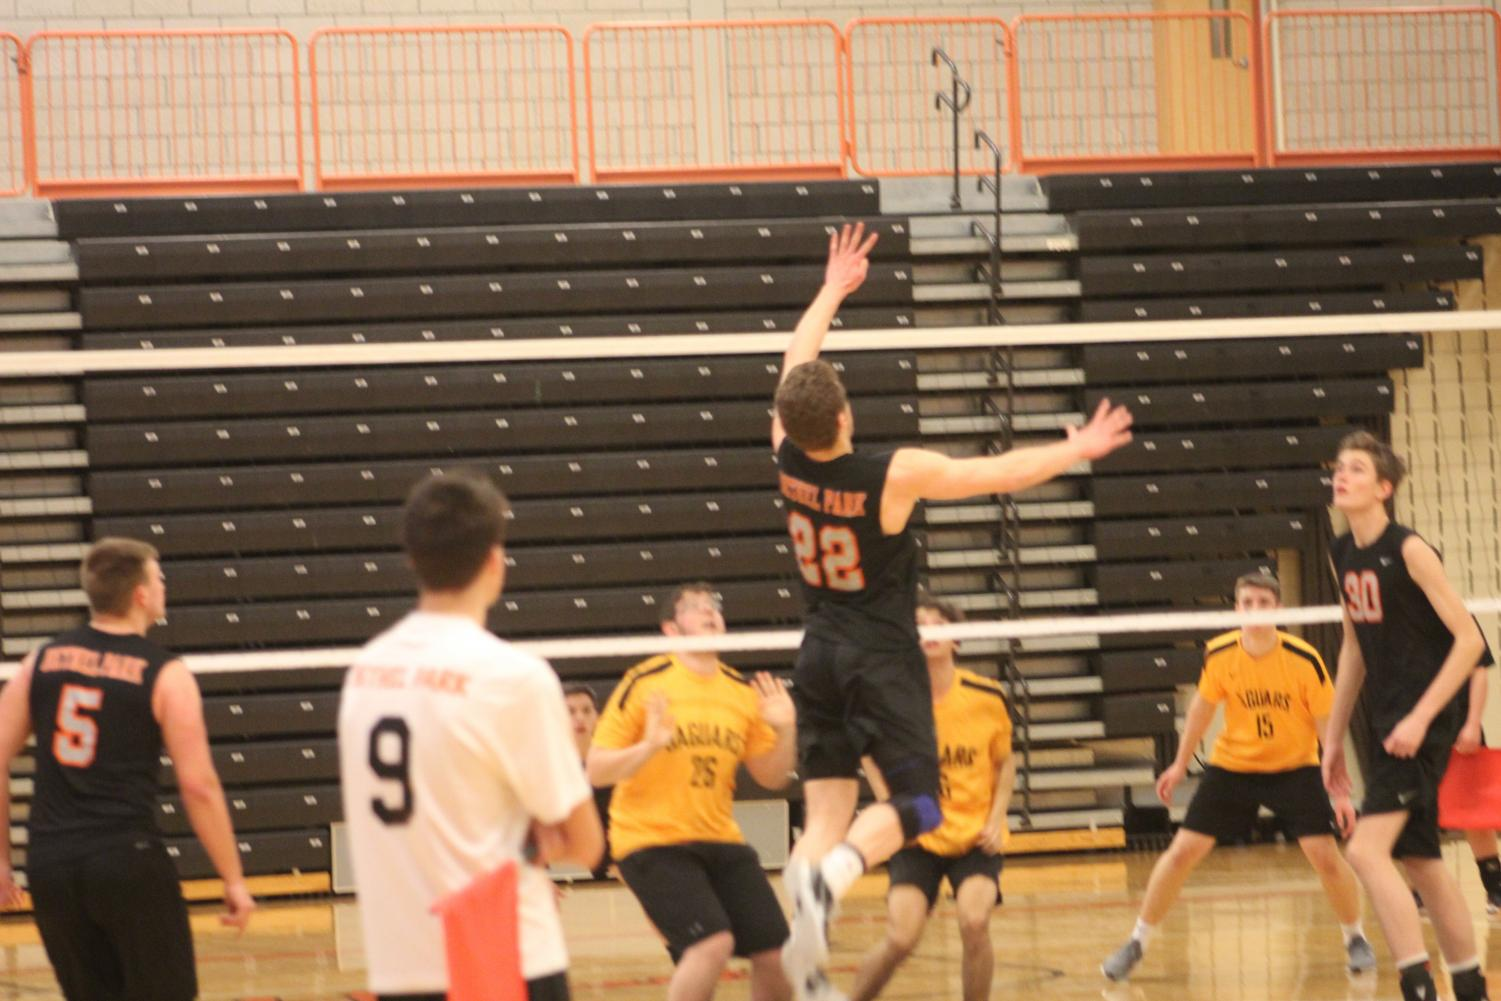 Max Cooley jumps to spike the ball during the Hawks' game vs. Thomas Jefferson on March 22. The Hawks won 3-0.